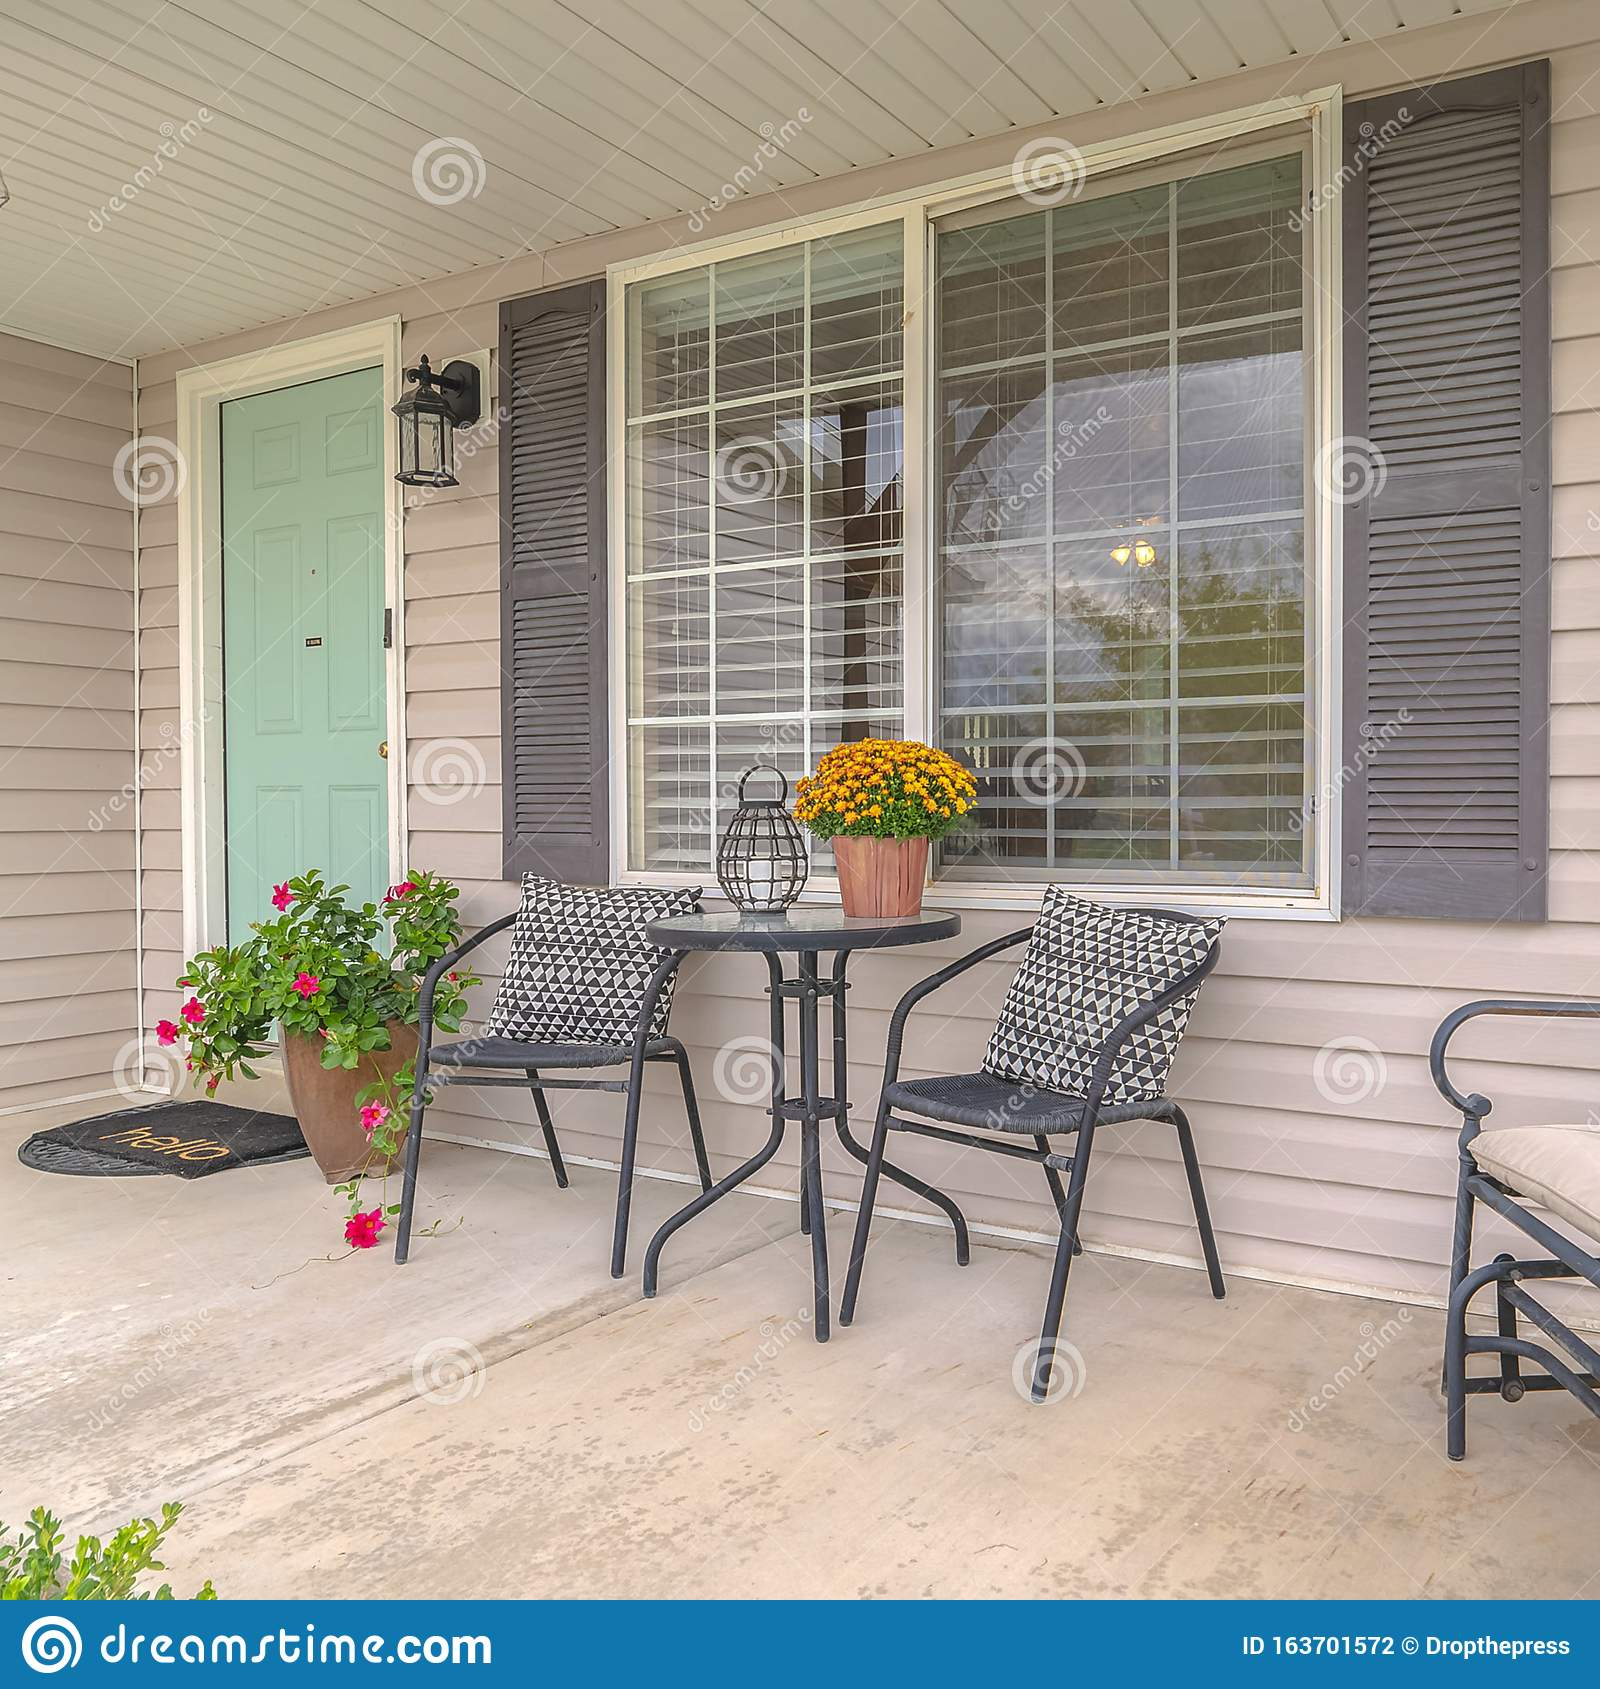 https www dreamstime com square frame front porch modern home outdoor furniture suburban image163701572